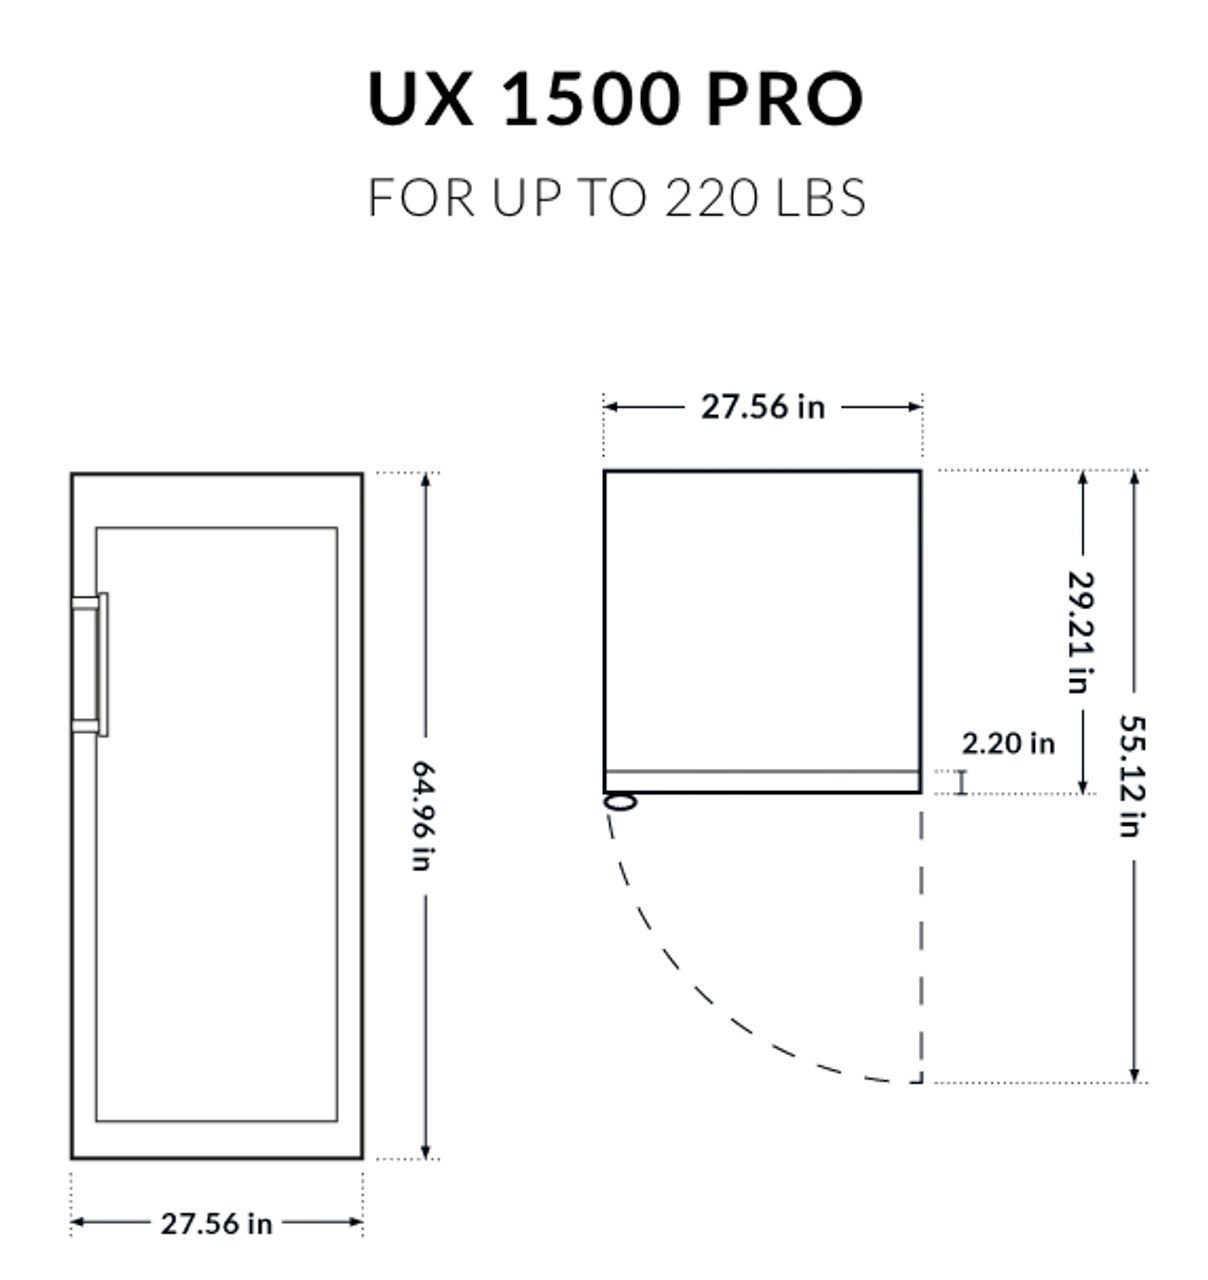 Dry Ager UX 1500 Pro - Up to 220 lbs.